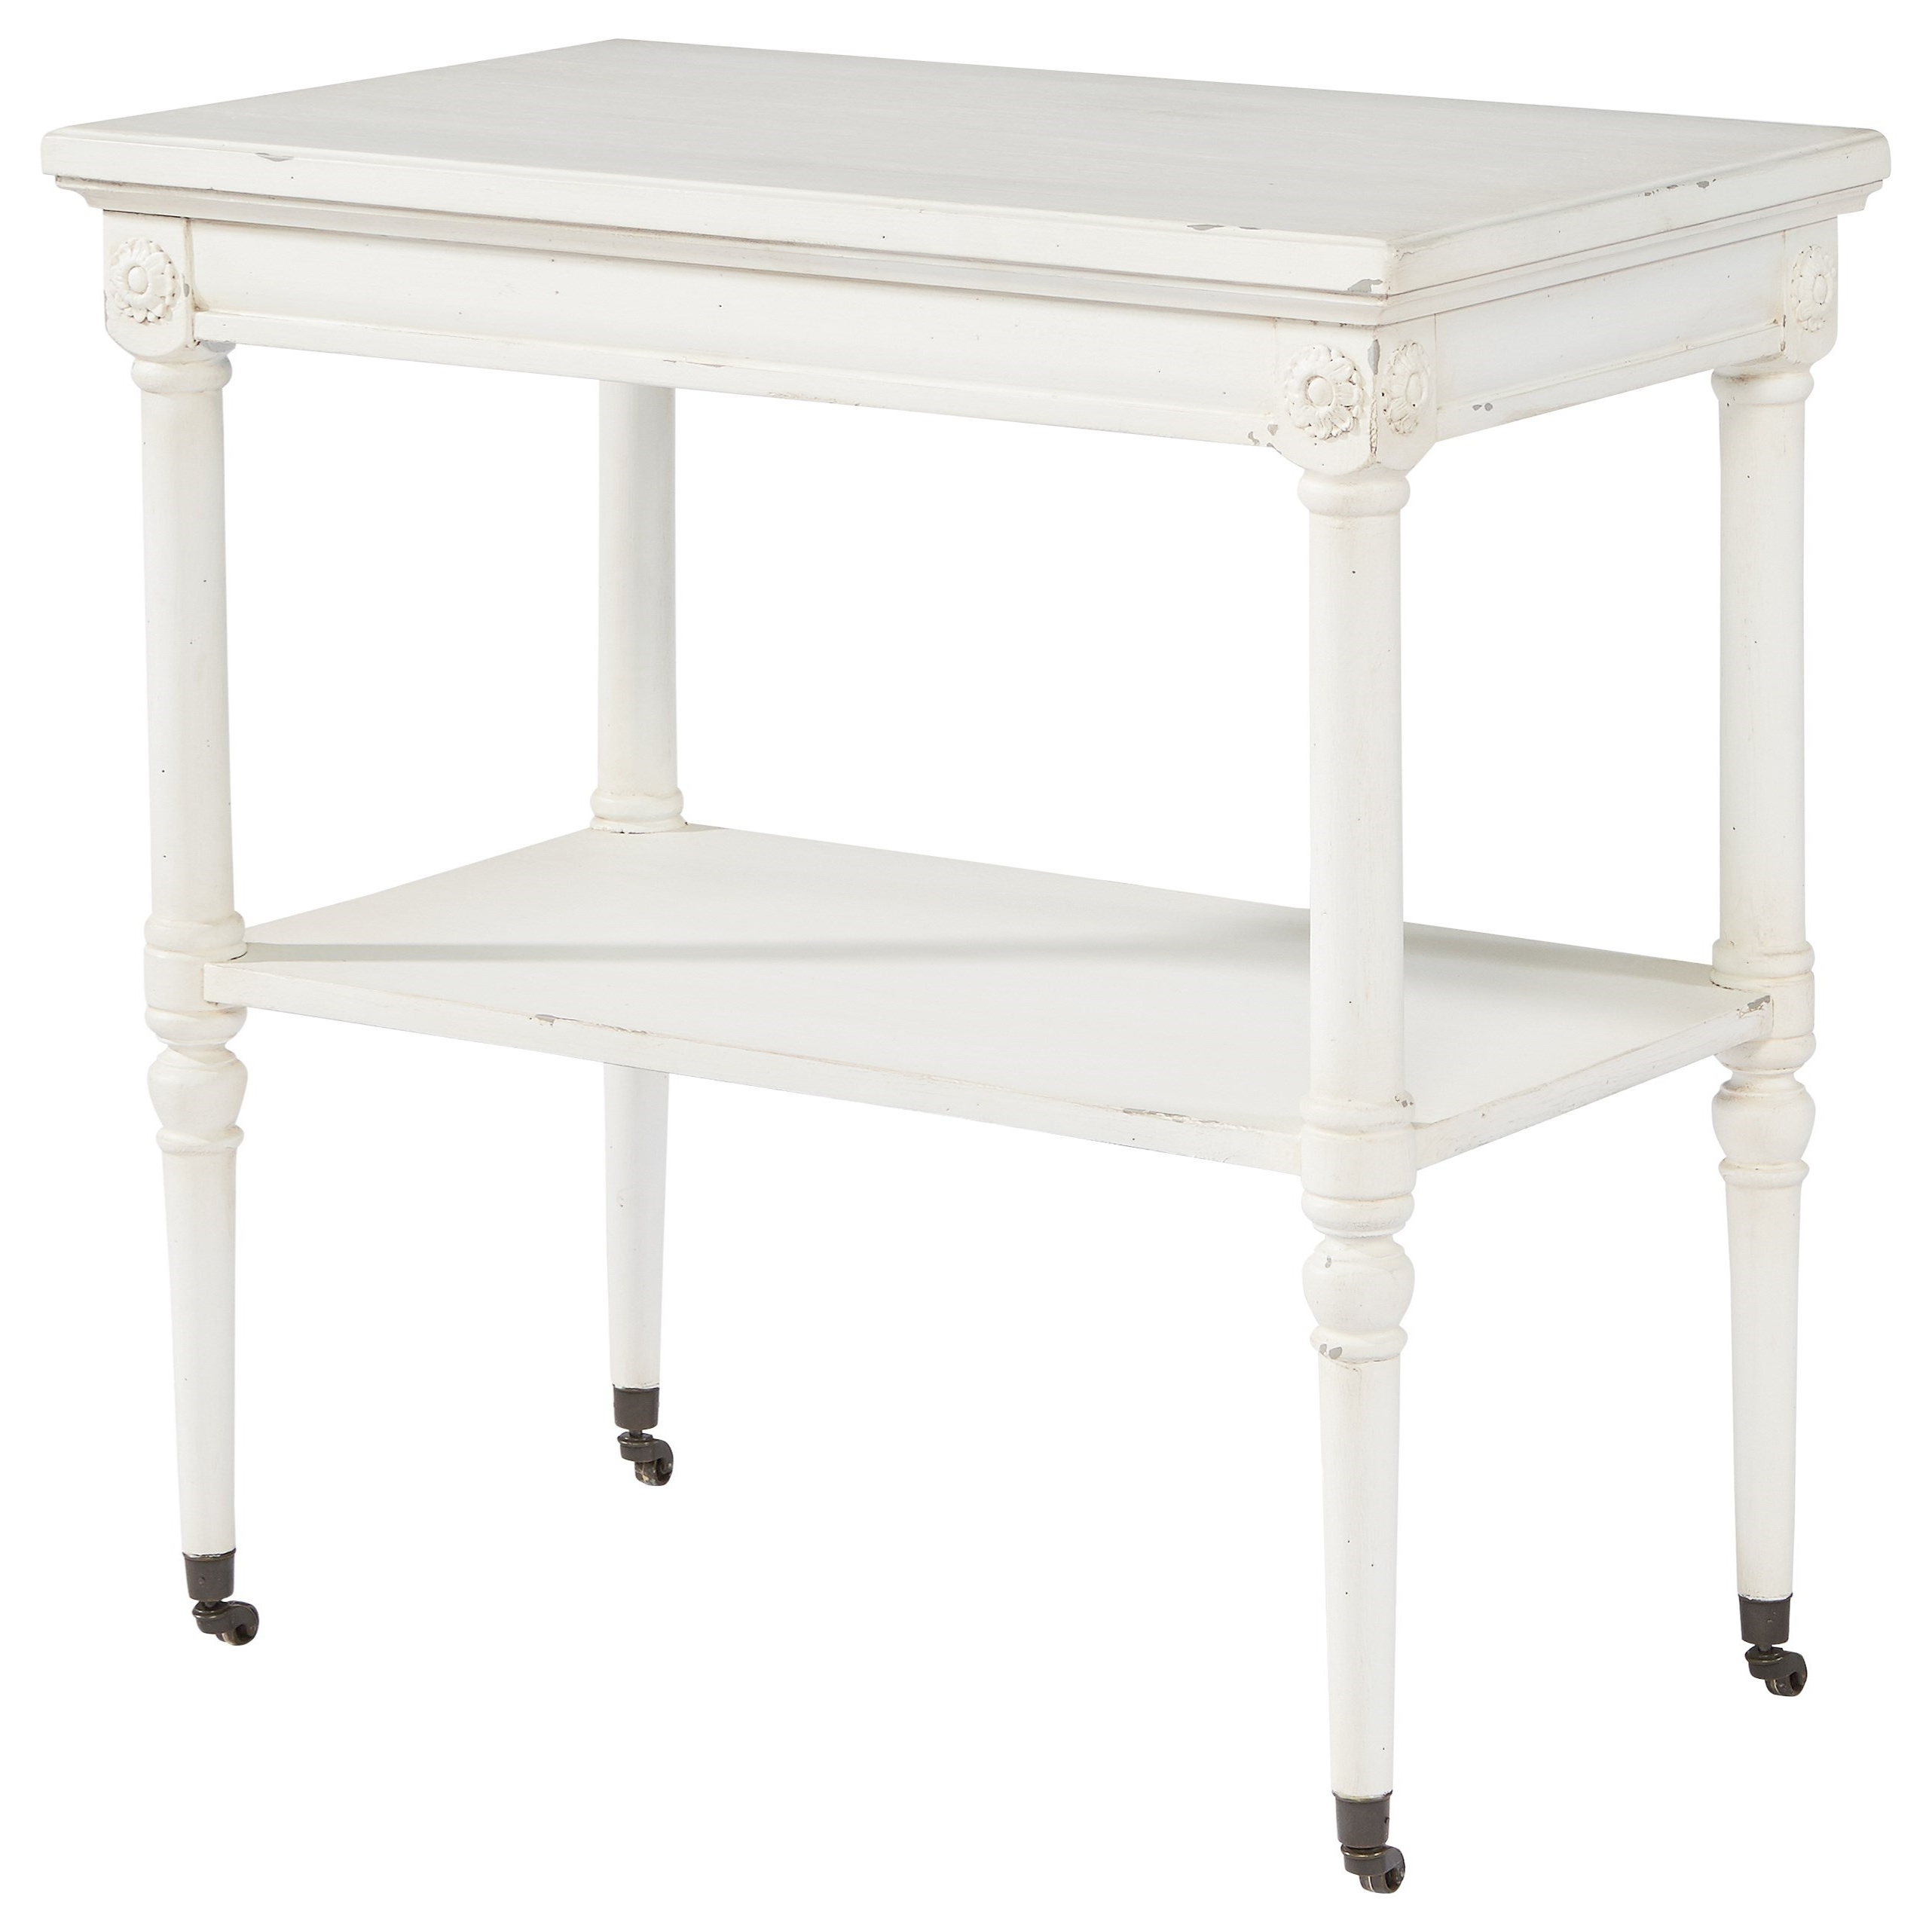 Magnolia Homejoanna Gaines French Inspired Petite Rosette Table Regarding Favorite Magnolia Home Scallop Antique White Cocktail Tables (View 11 of 20)